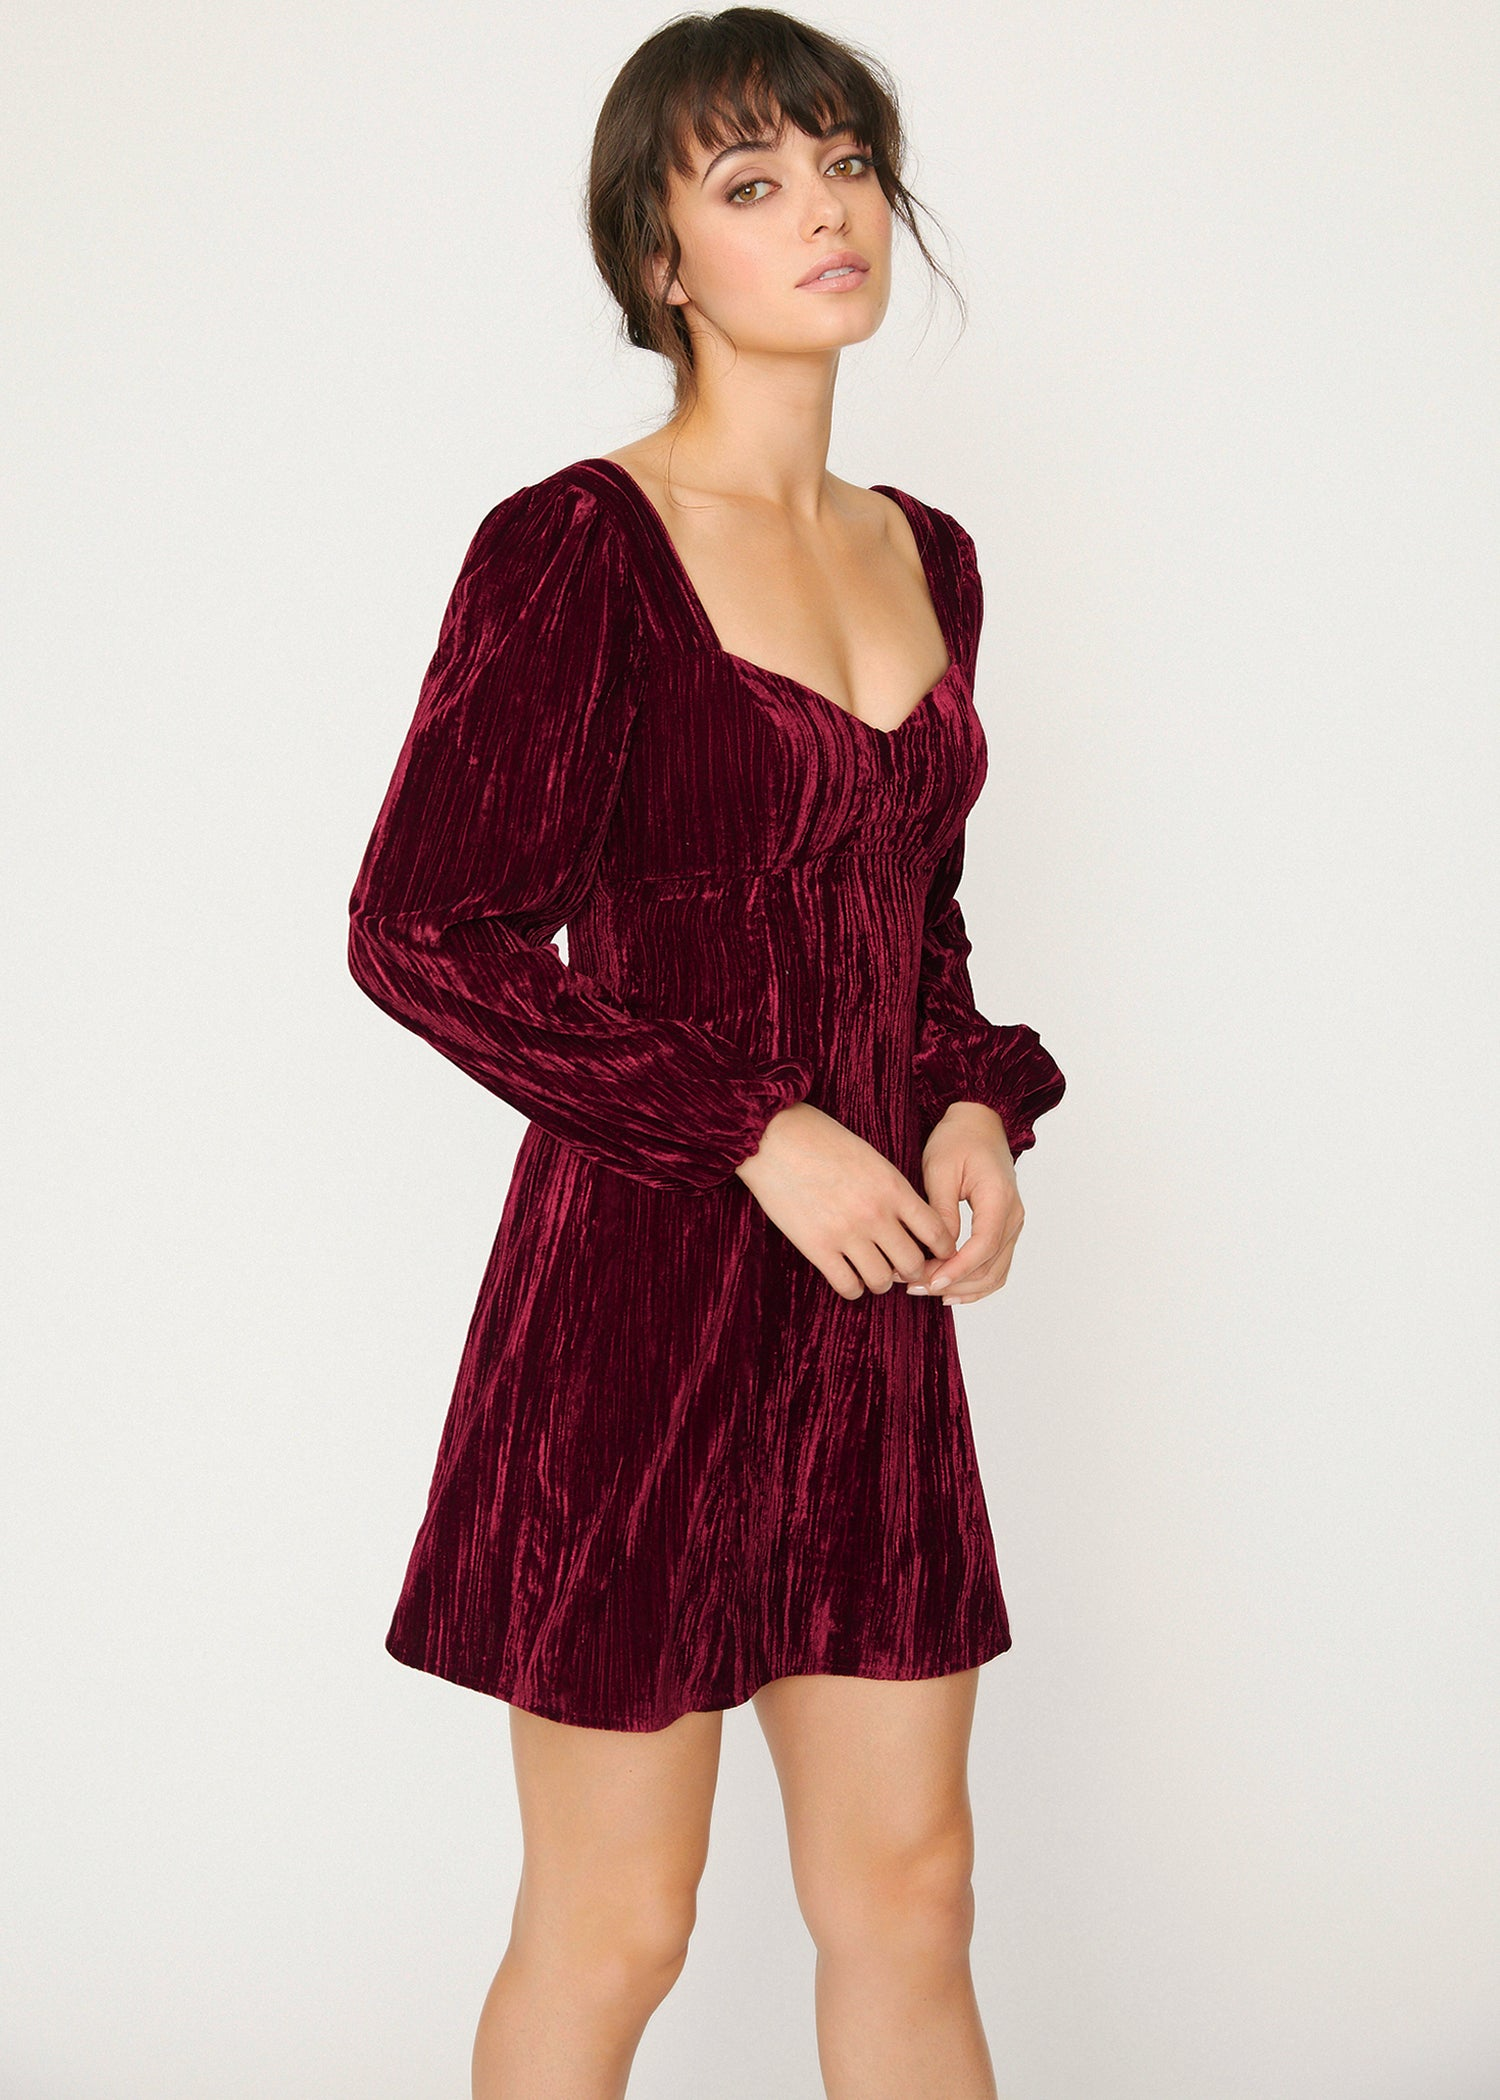 Vinyard Mini Dress